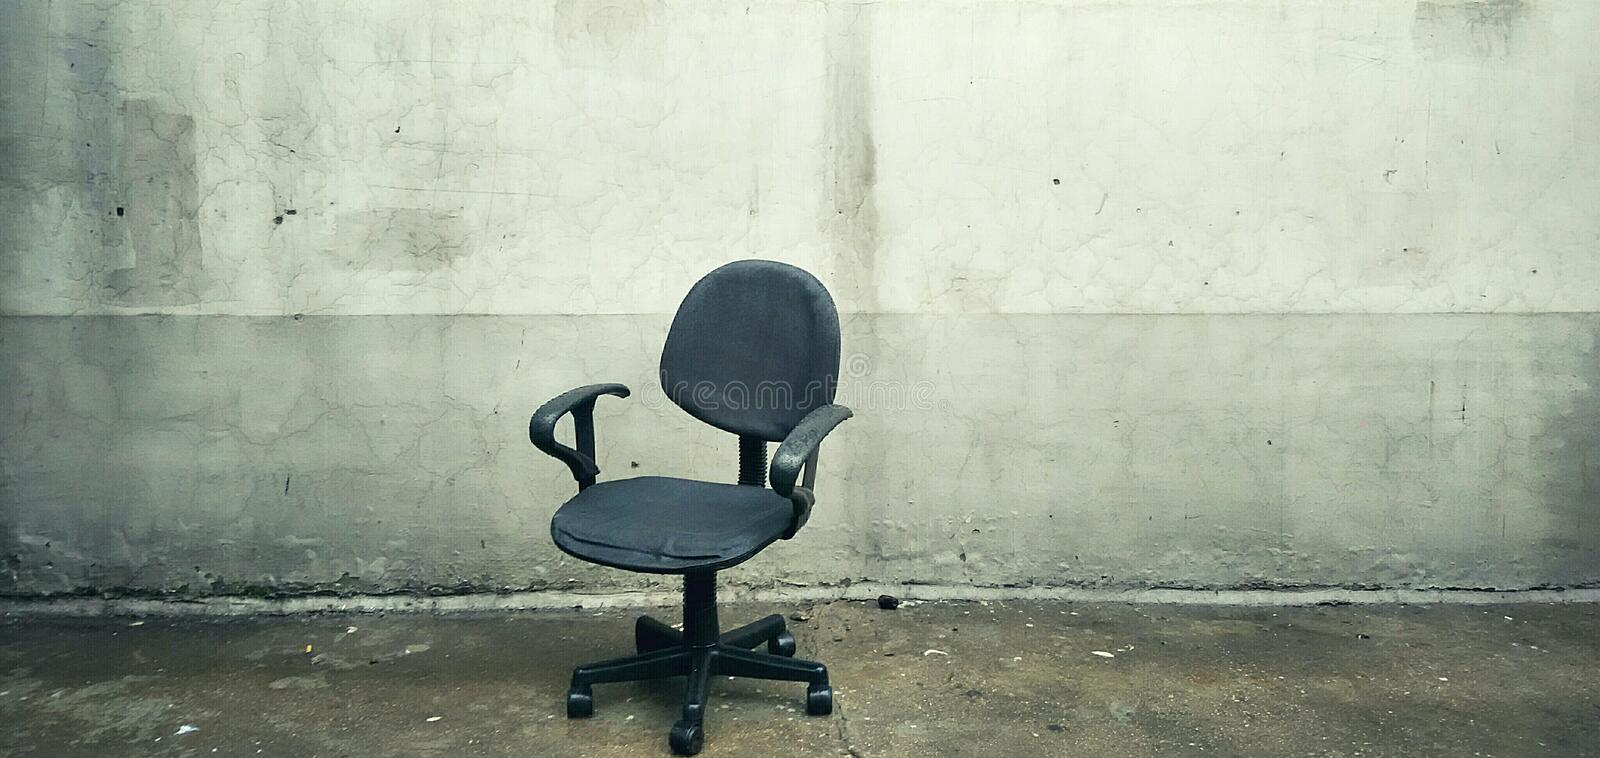 Download An Abandoned Computer Chair Stock Photo - Image: 83723139